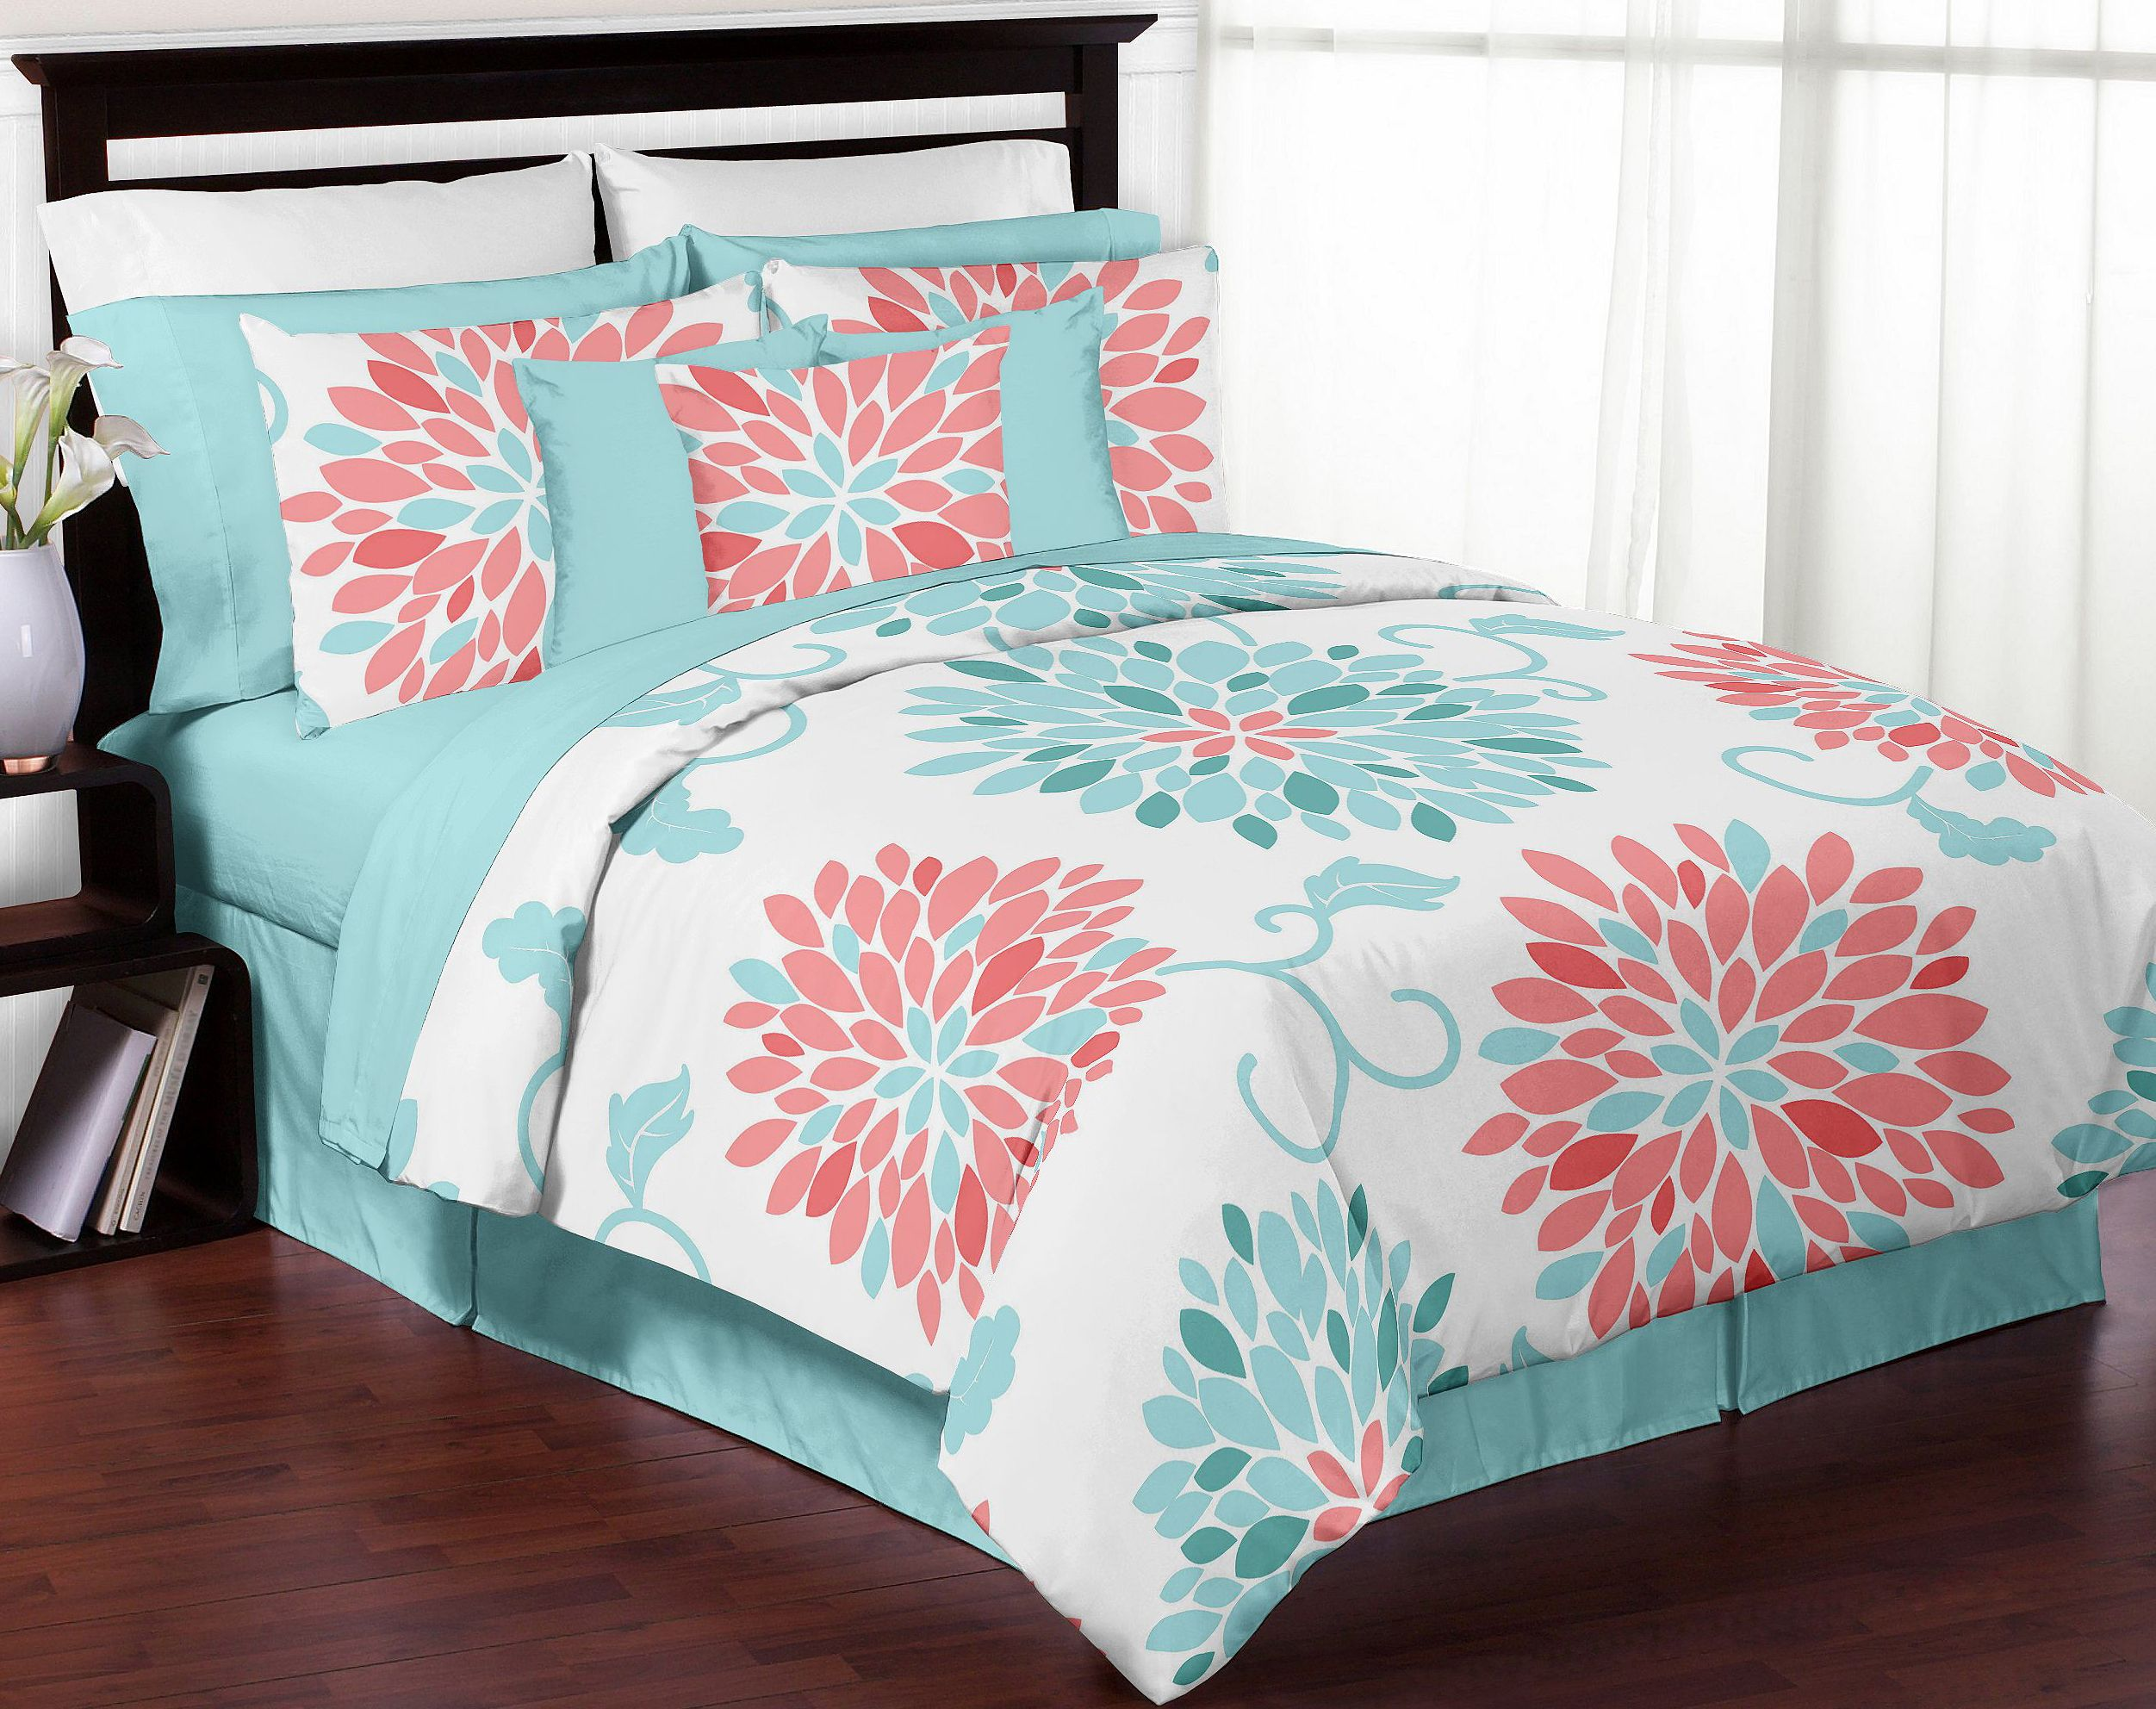 brown blue size pink white comforter luxury full bedroom bed cheap black gold bedding king of coral twin and set sets turquoise queen quilt